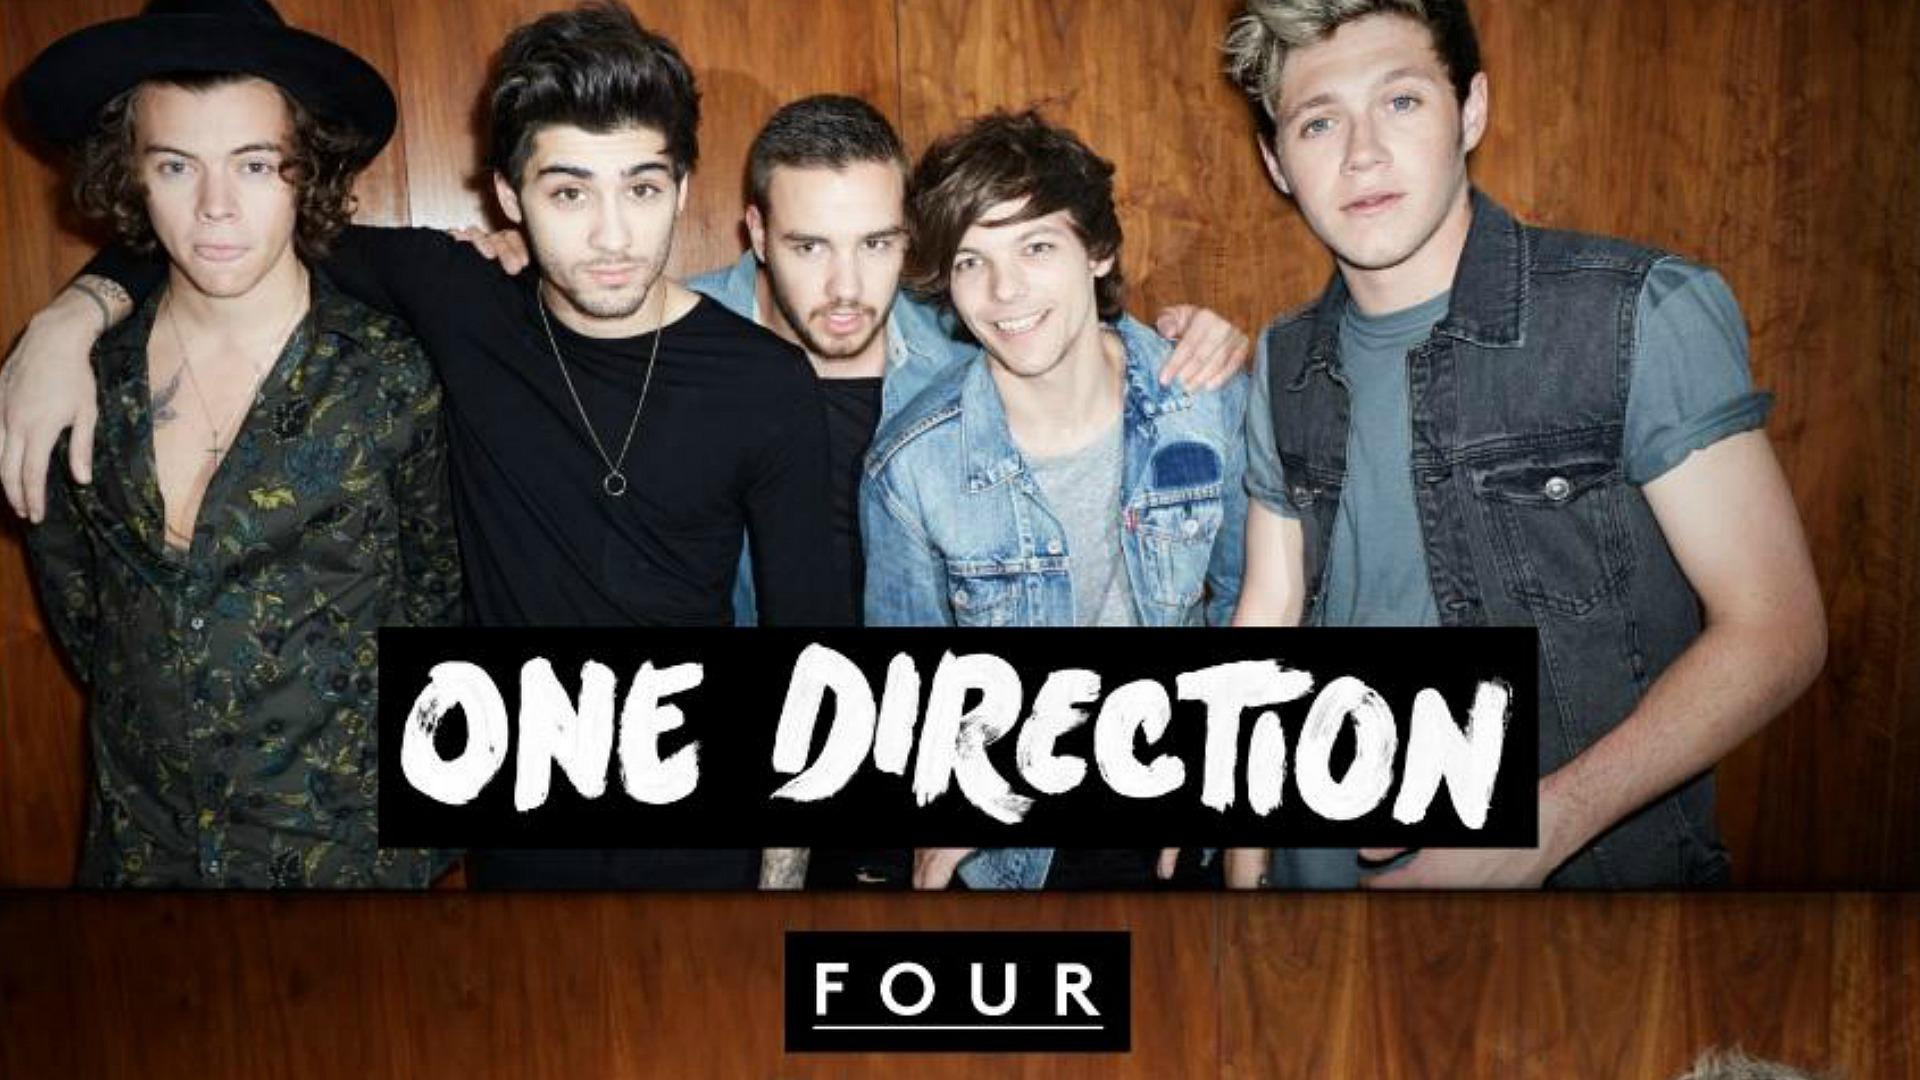 One Direction Detail: One Direction Drops New Album Details, Free Song Download